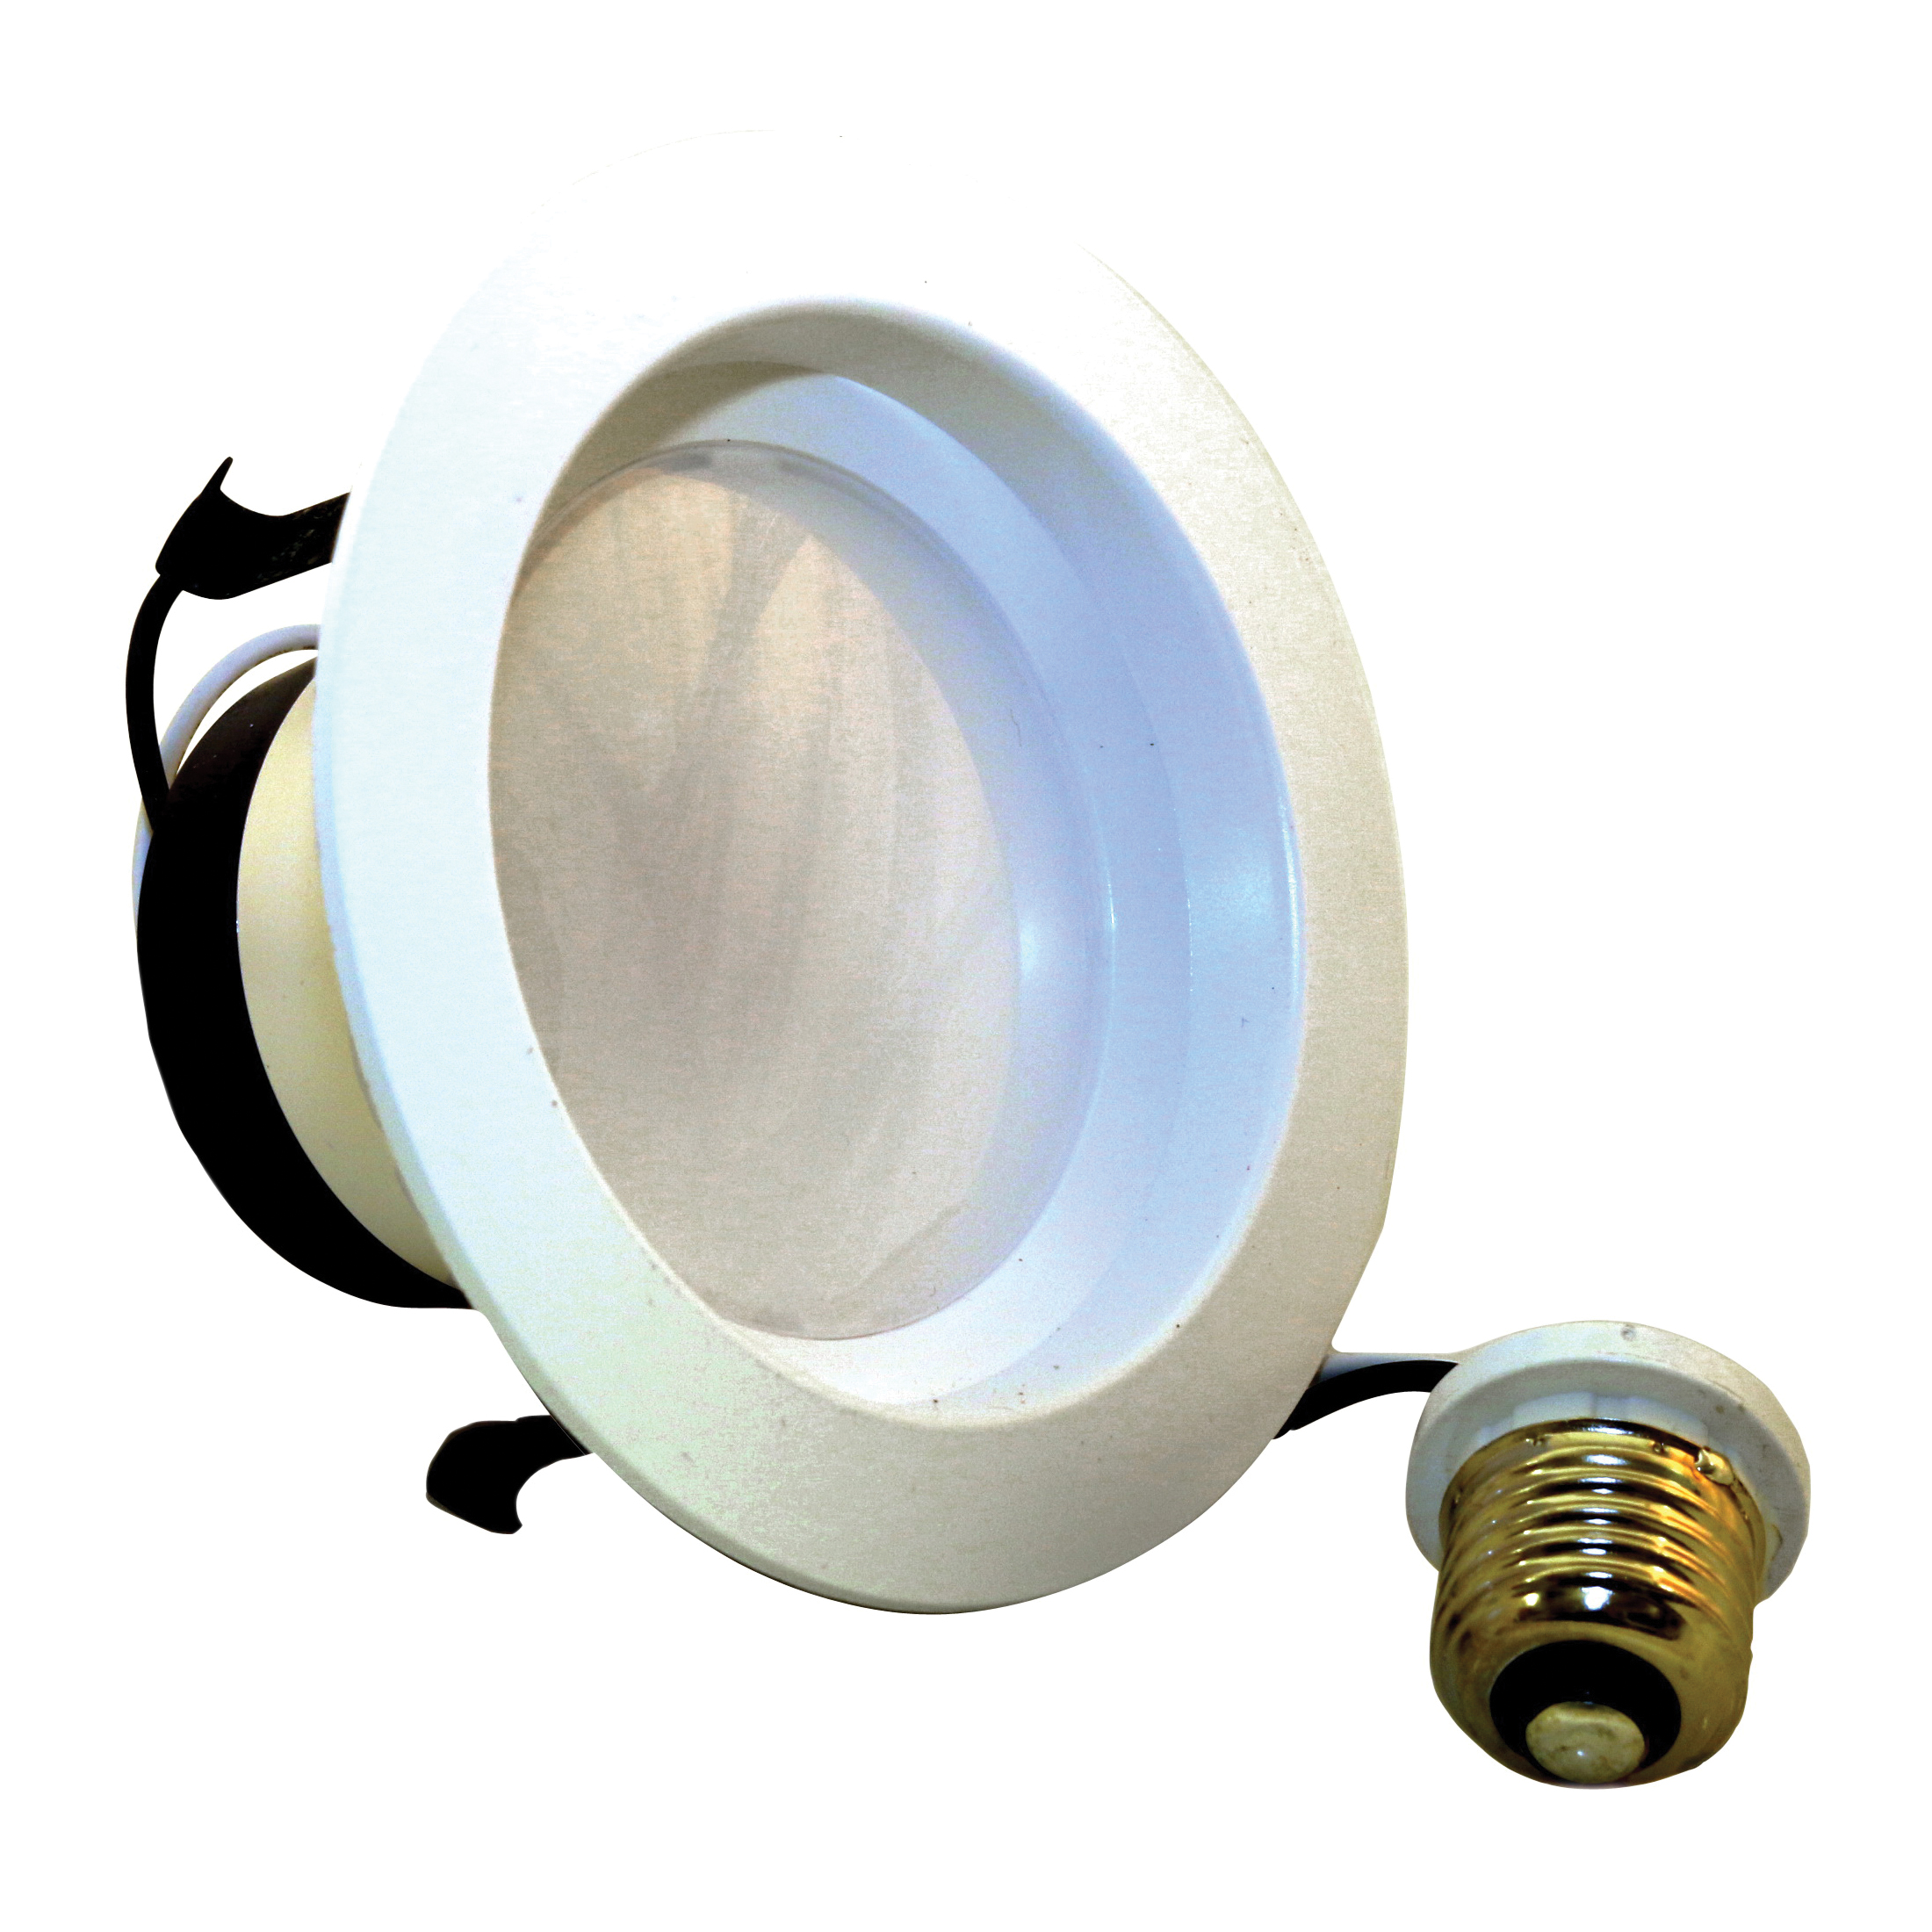 Picture of Sylvania 70521 Downlight Kit, Dimmable, Case